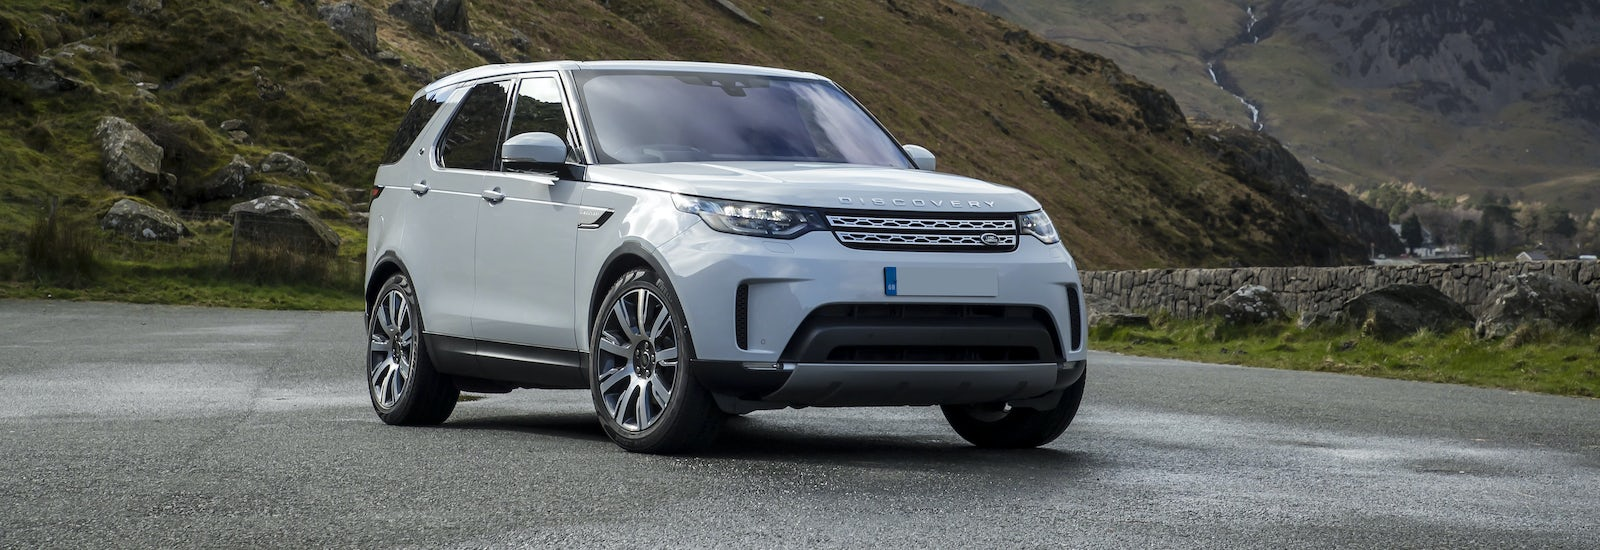 hse wikiwand land rover en discovery